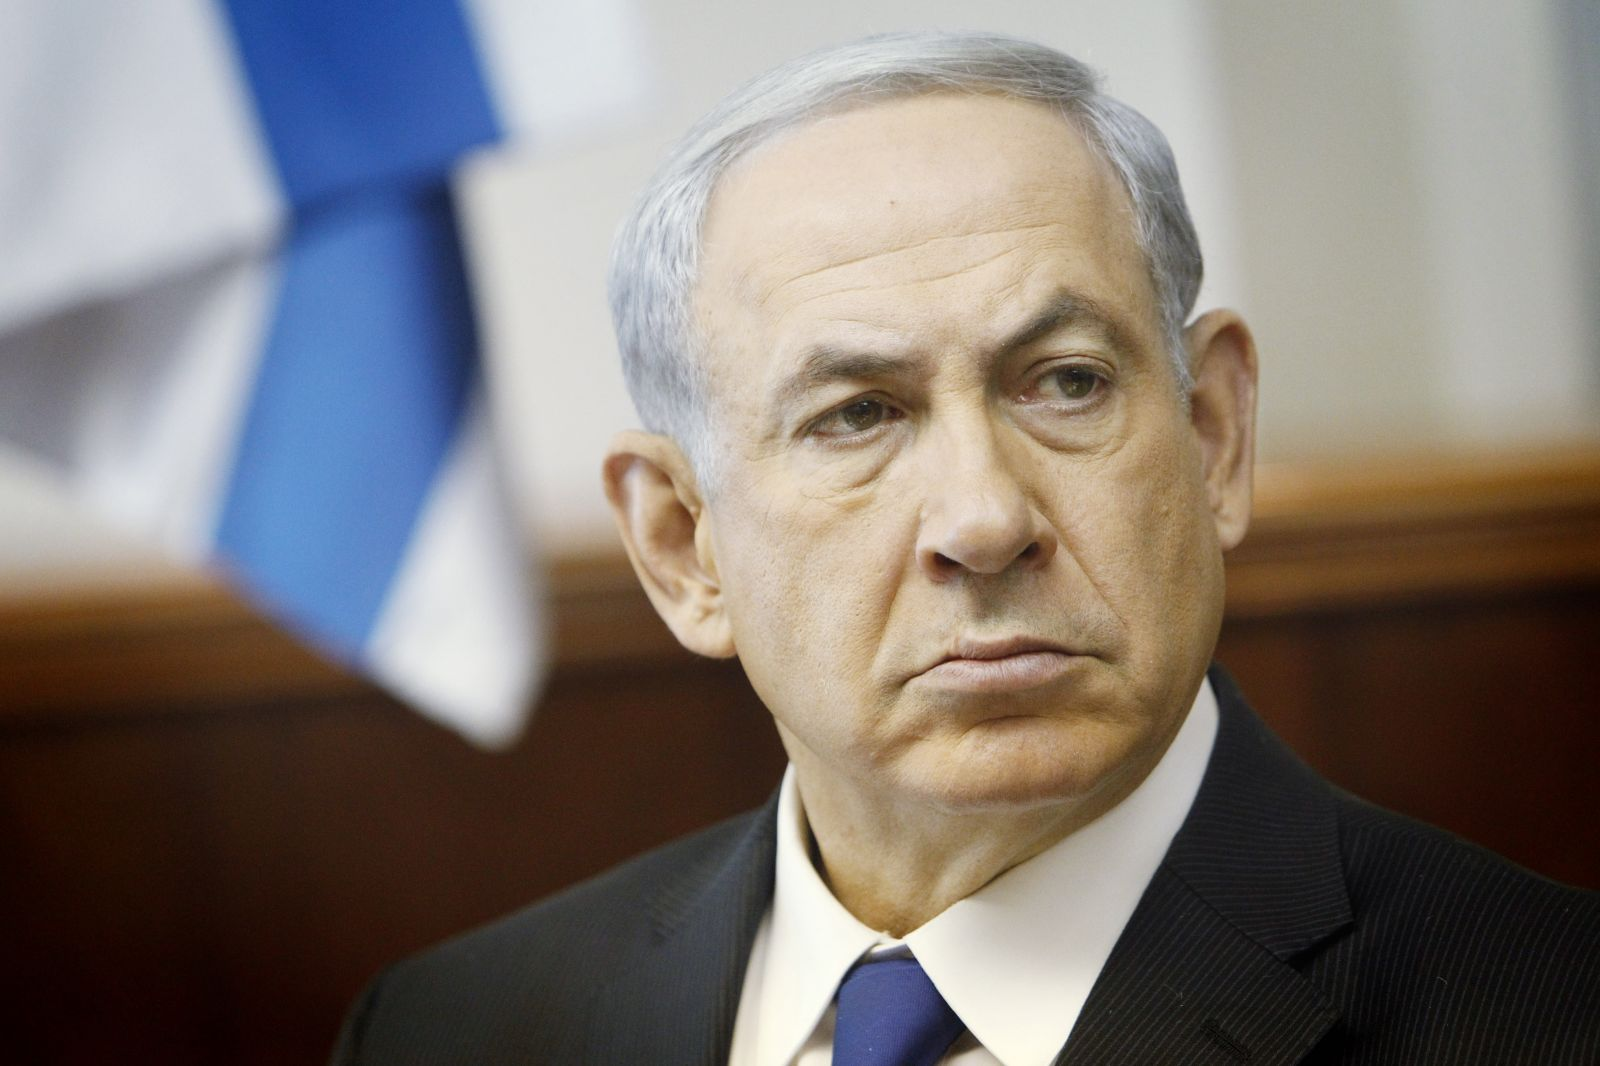 Netanyahu blasts UN as secretary general makes first trip to region